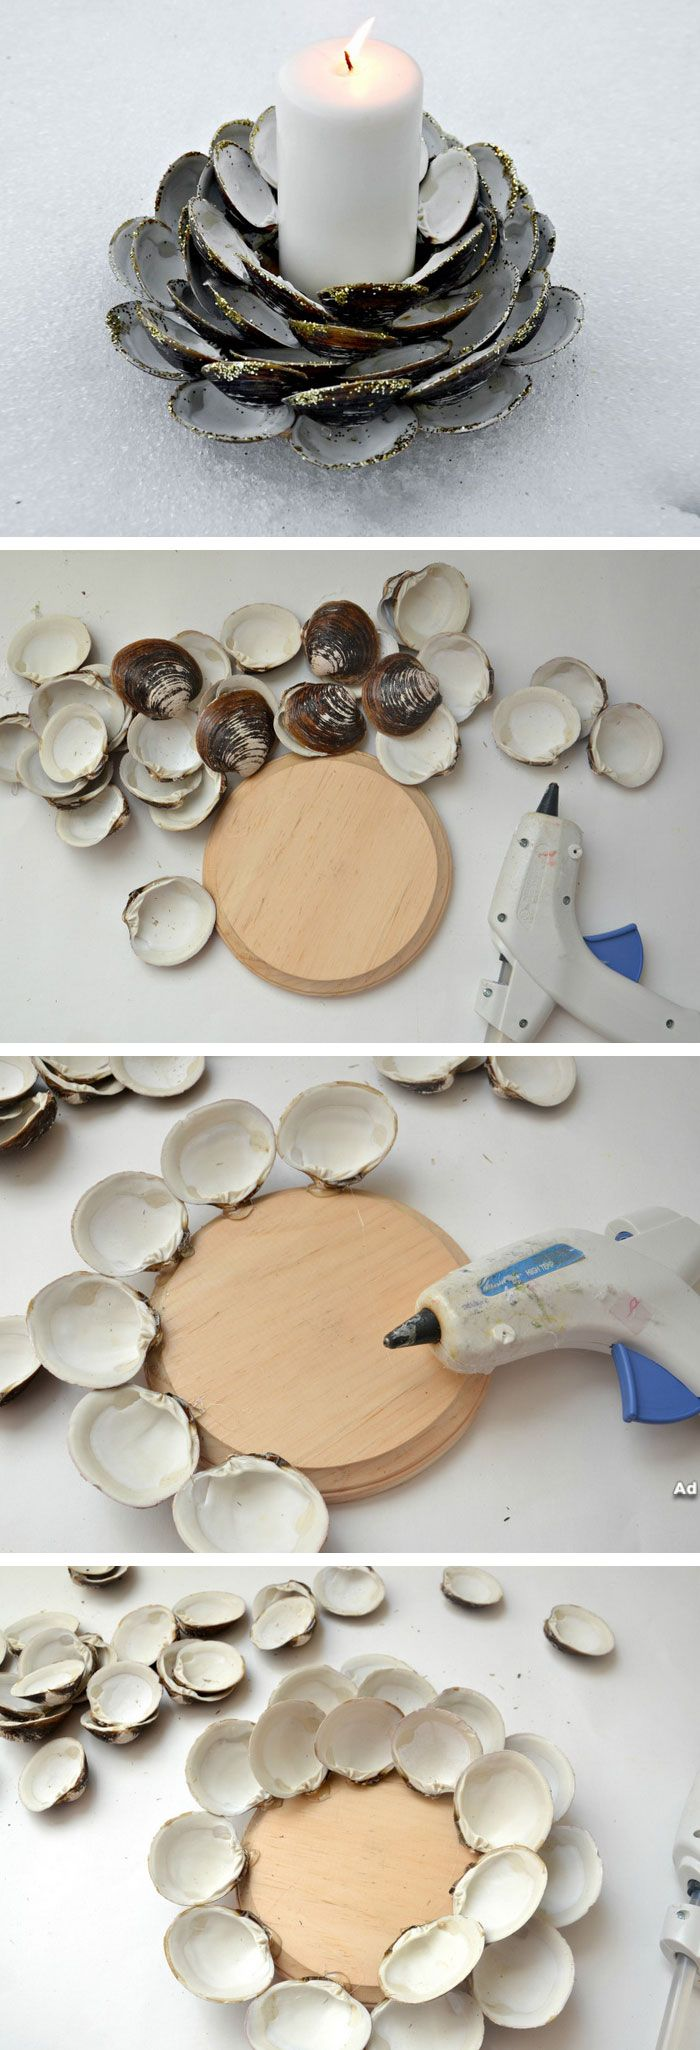 Seashell Candle Holder with Glitter | Click Pic for 18 DIY Seashell Craft Ideas for the Home | Easy Seashell Decorating Ideas on a